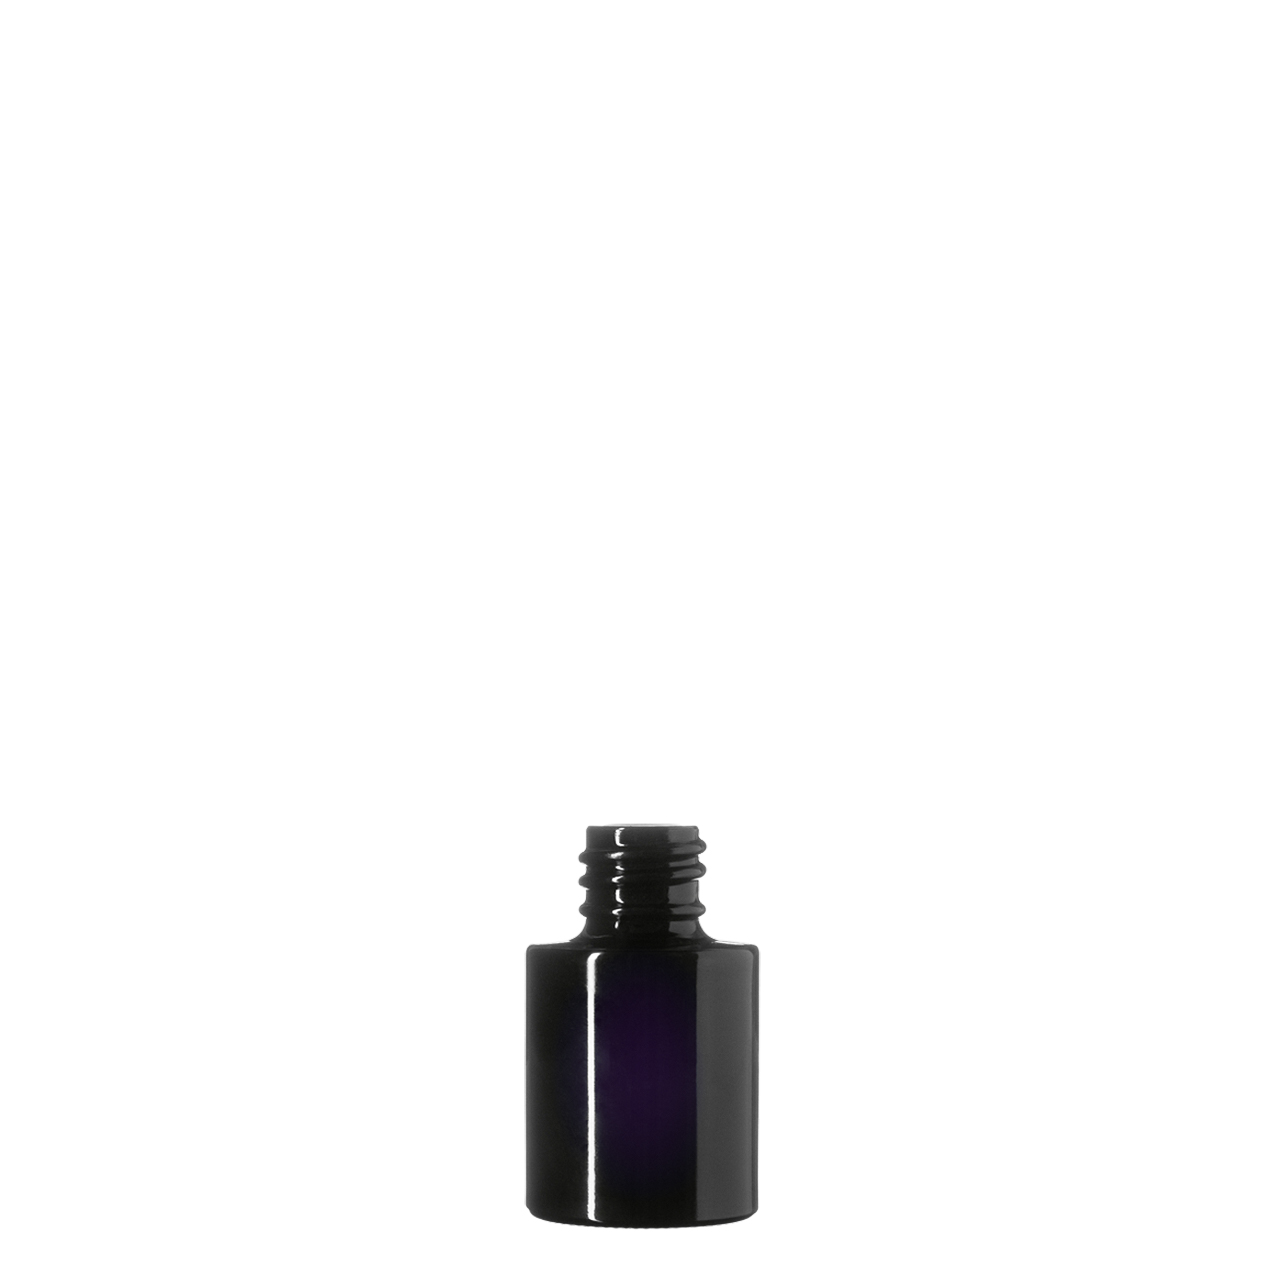 Cosmetic bottle Virgo 15 ml, Miron, 18/415 thread